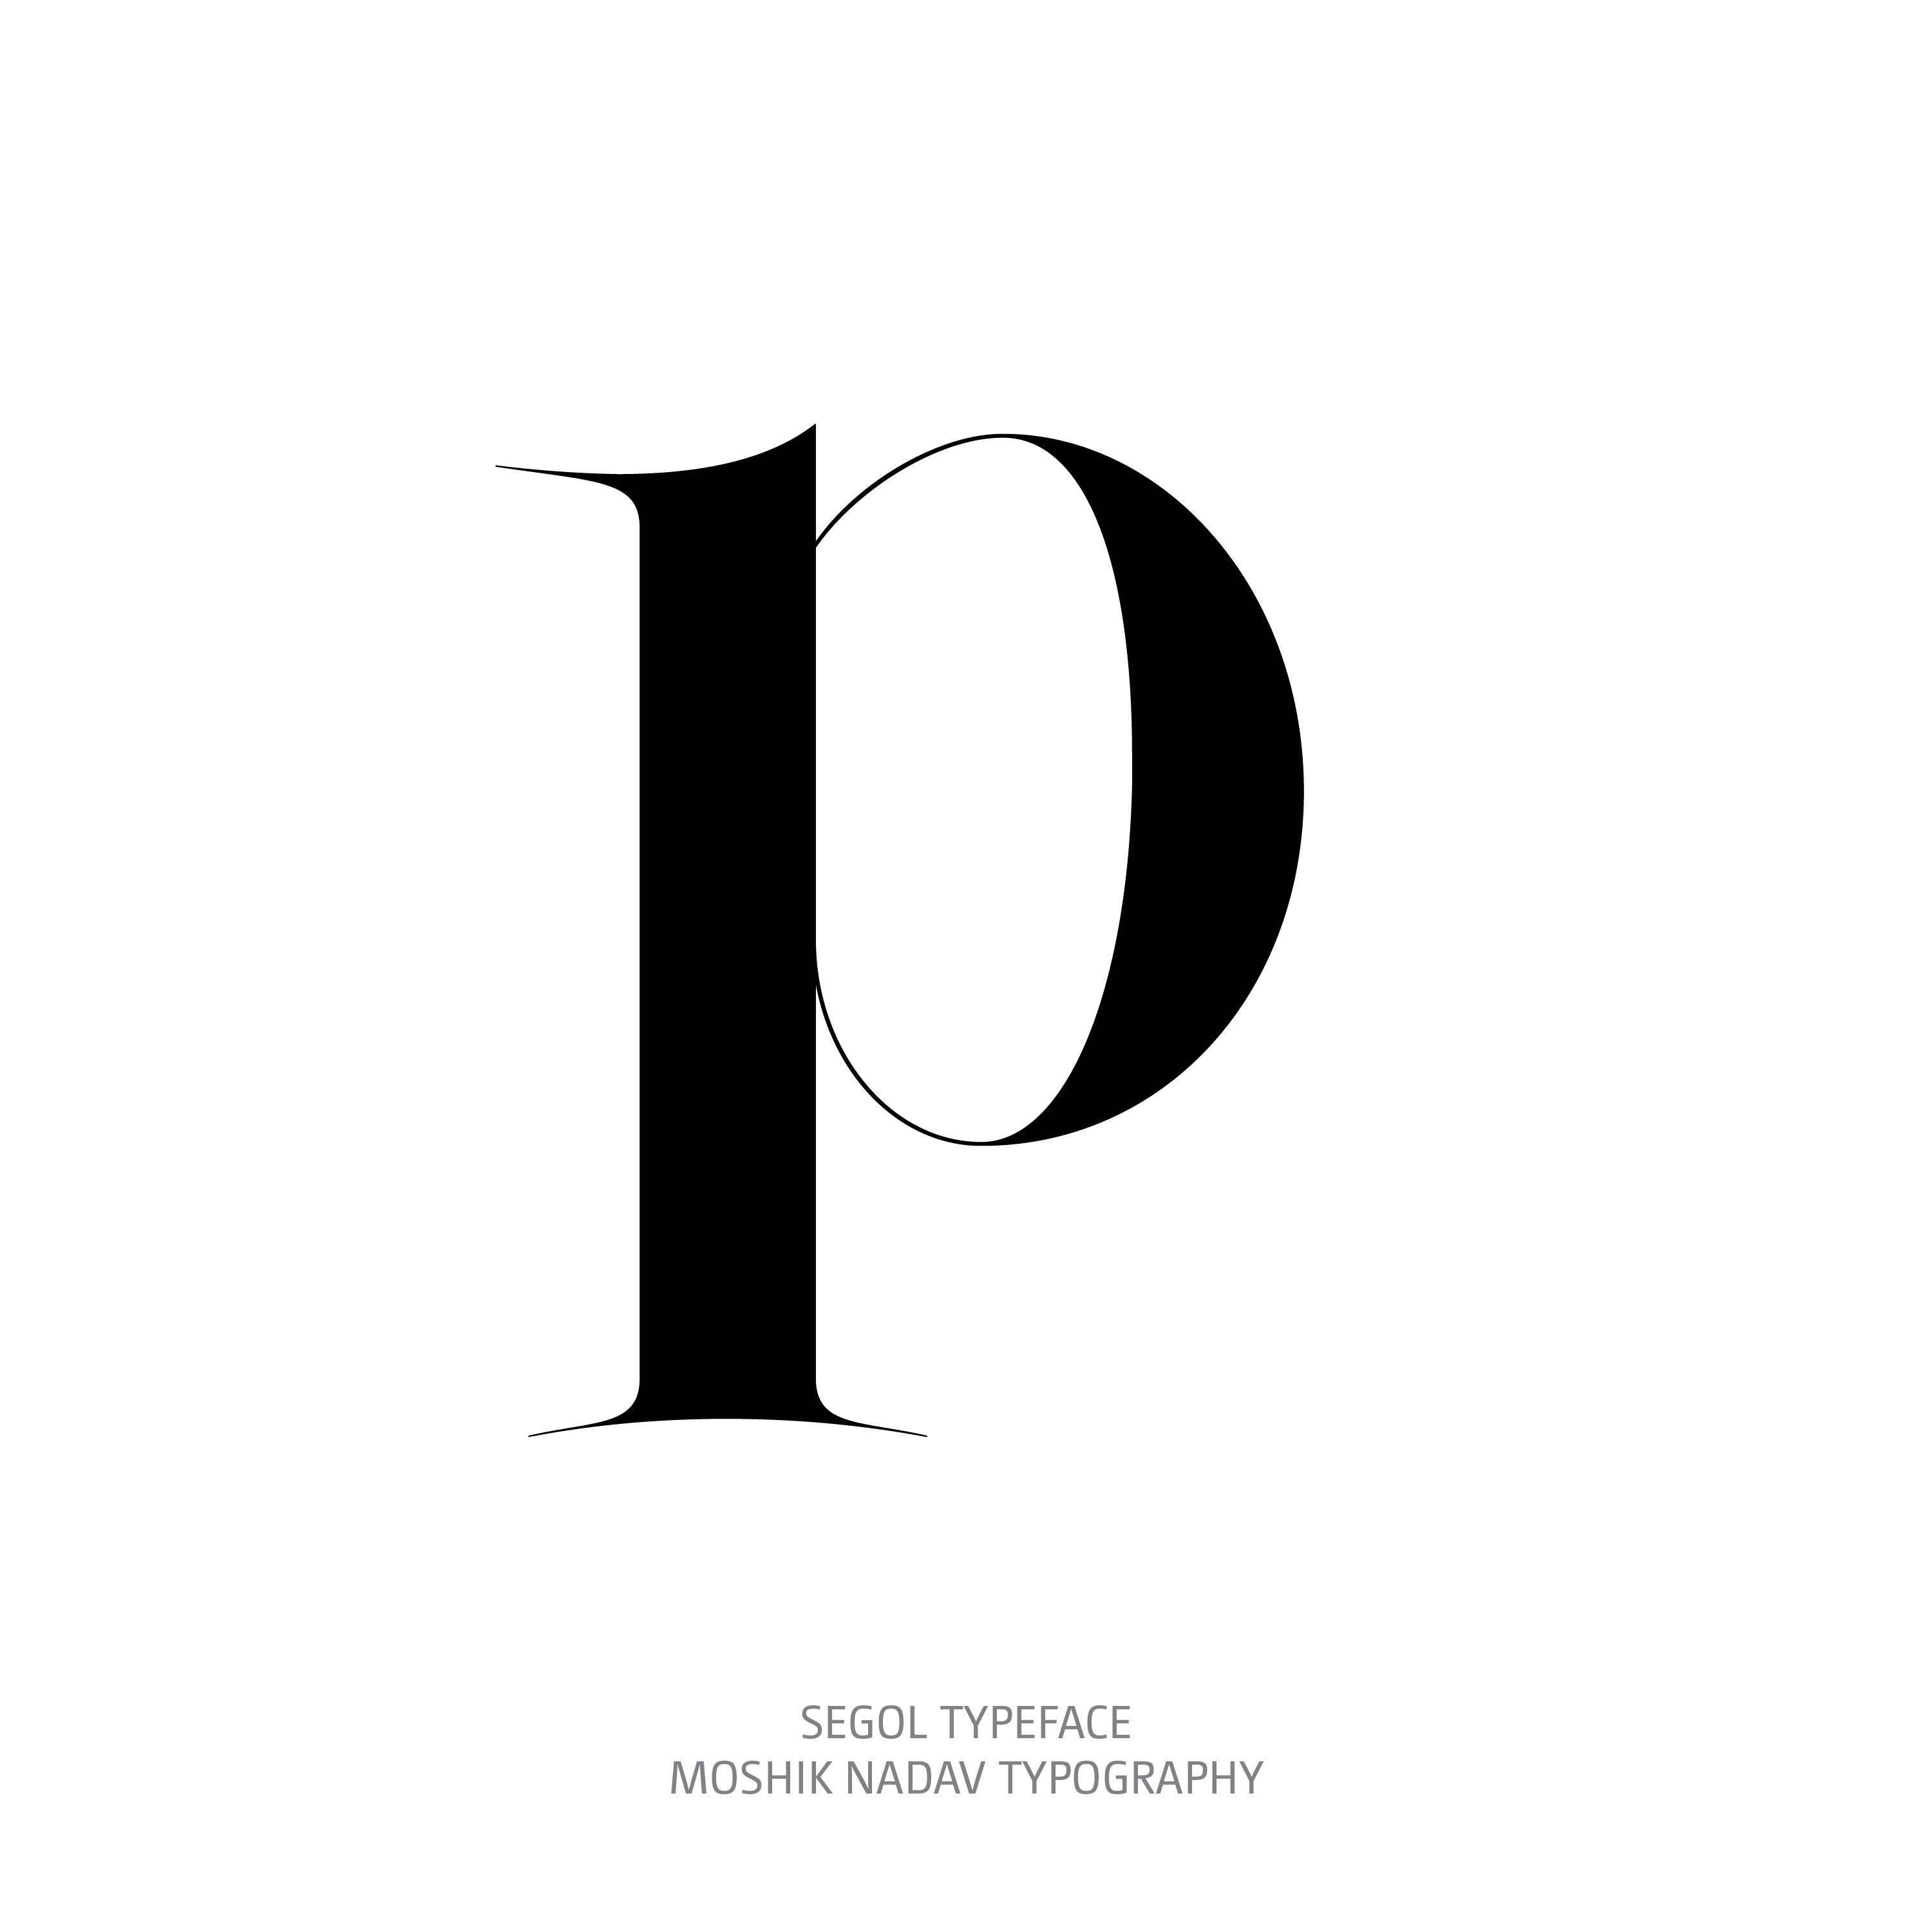 Segol Typeface p The Ultimate Font For Fashion Typography and sexy logos